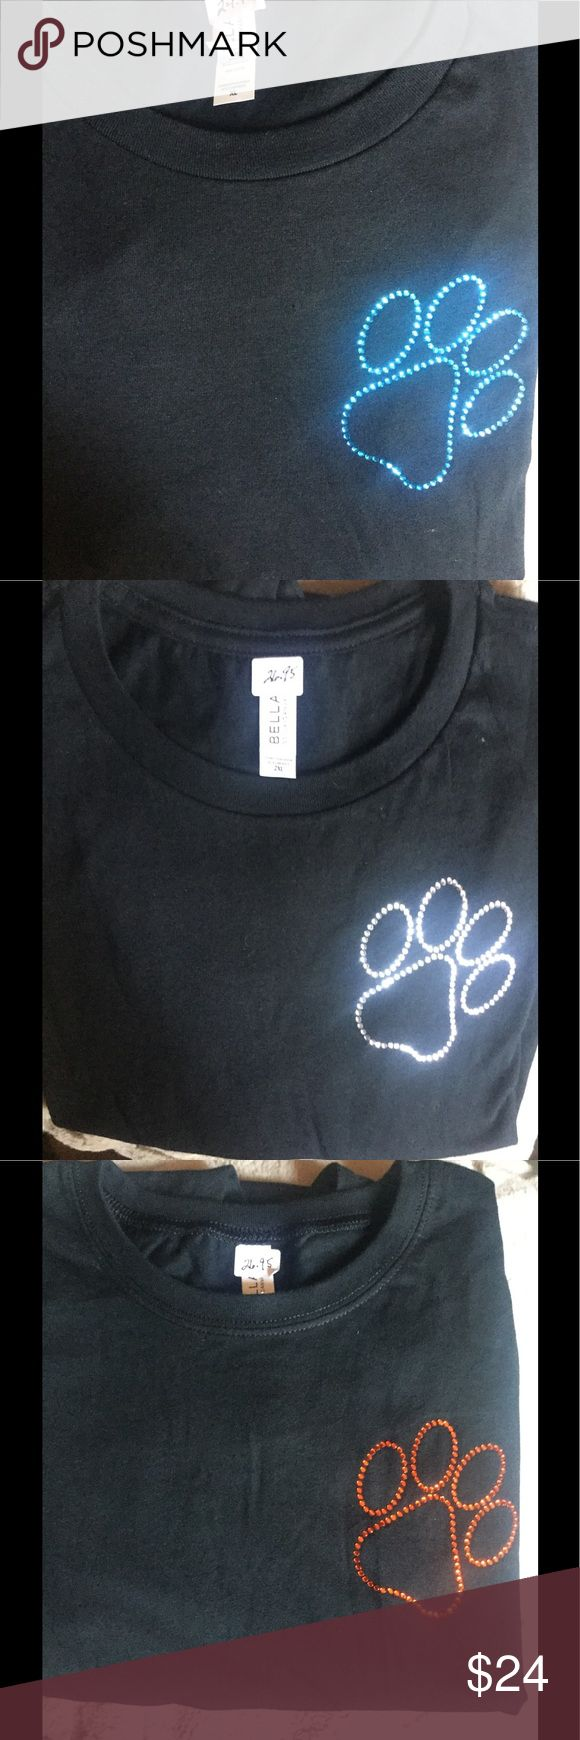 Women's tees with large dog paw Black tees with large dog paw in teal, silver or tangerine.  Sizes Small thru 2X Bella Tops Tees - Long Sleeve